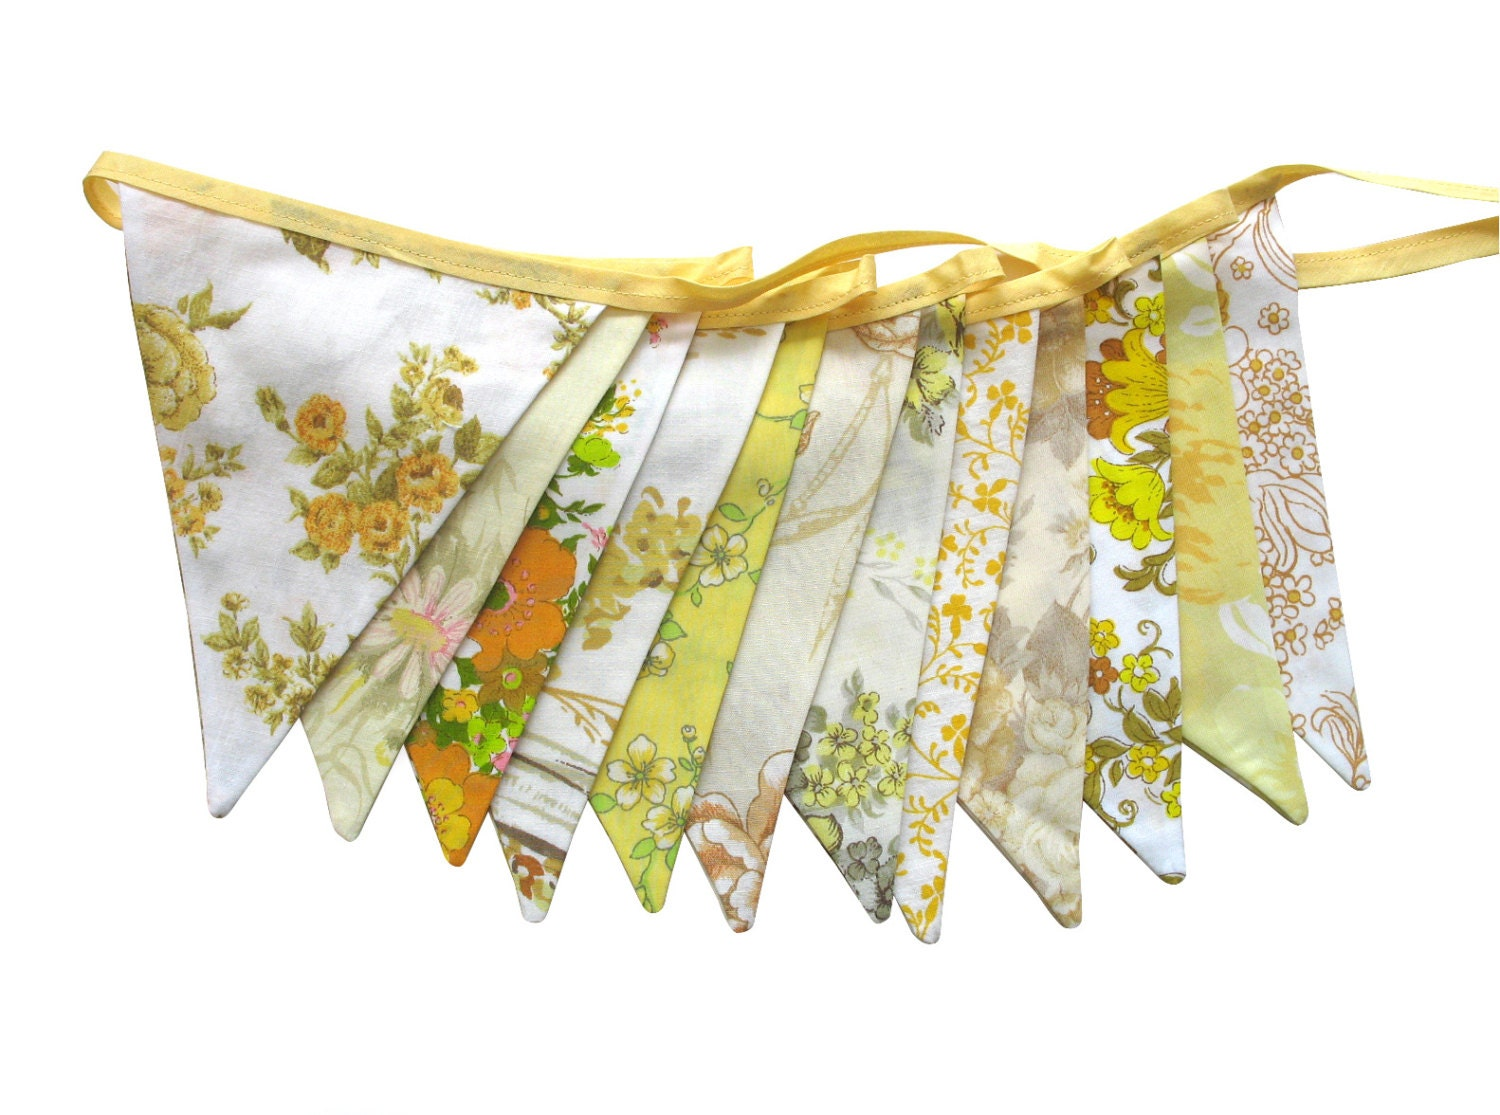 Vintage Retro Yellow / Lemon & Mustard Floral Flag Bunting. Shabby Chic Party Decoration. Wall hanging Pennant OOAK - MerryGoRoundHANDMADE